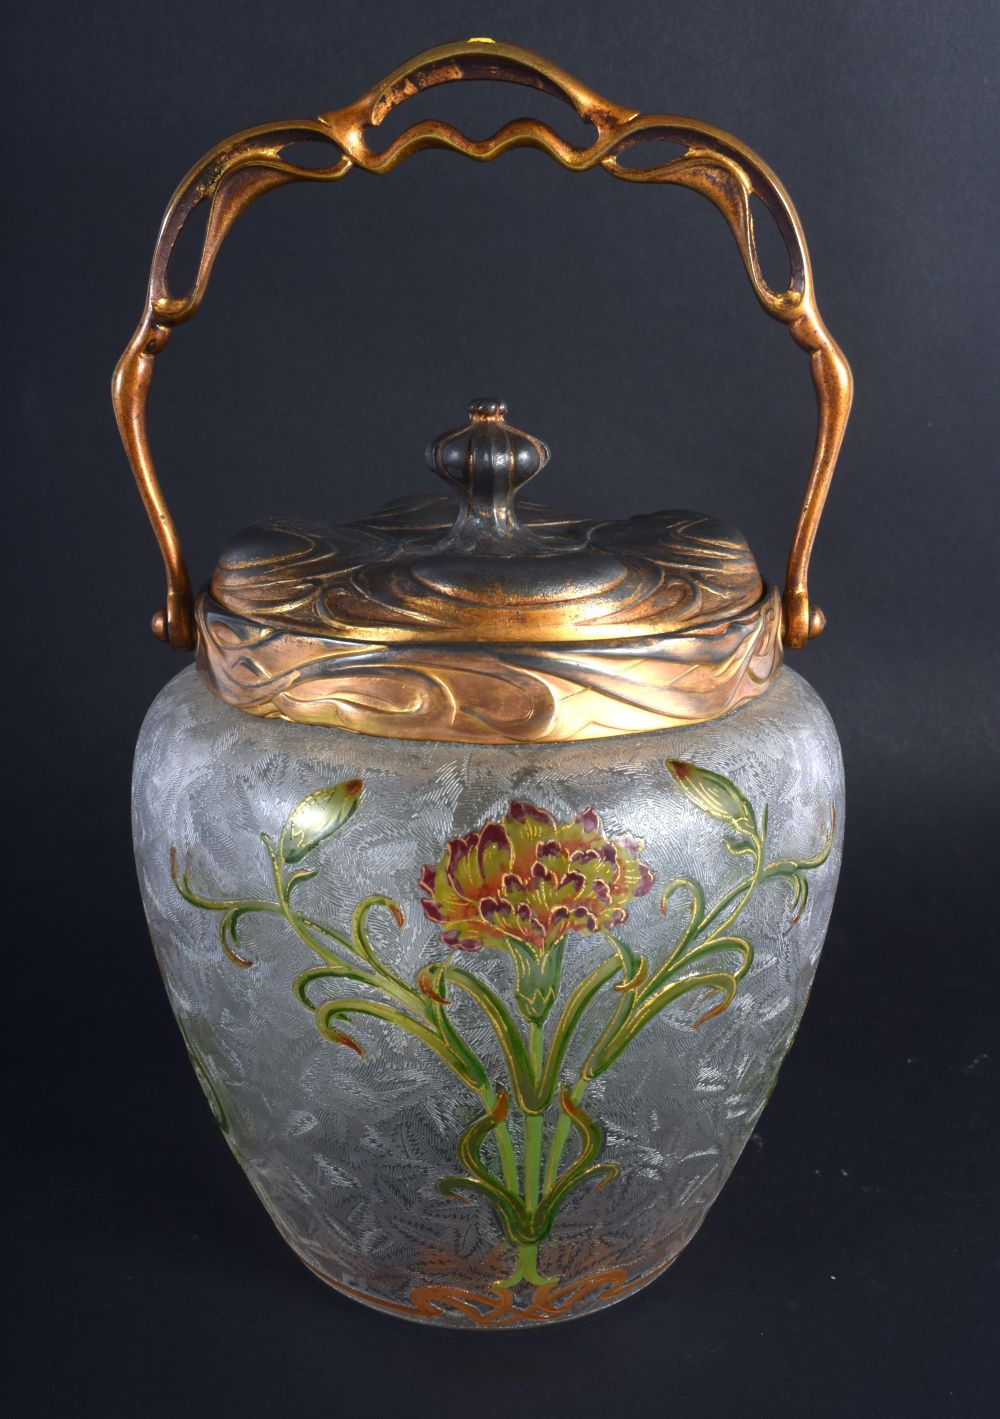 A FINE FRENCH ART NOUVEAU ENAMELLED FROSTED GLASS BISCUIT BARREL possibly by Legras, painted with st - Image 2 of 4